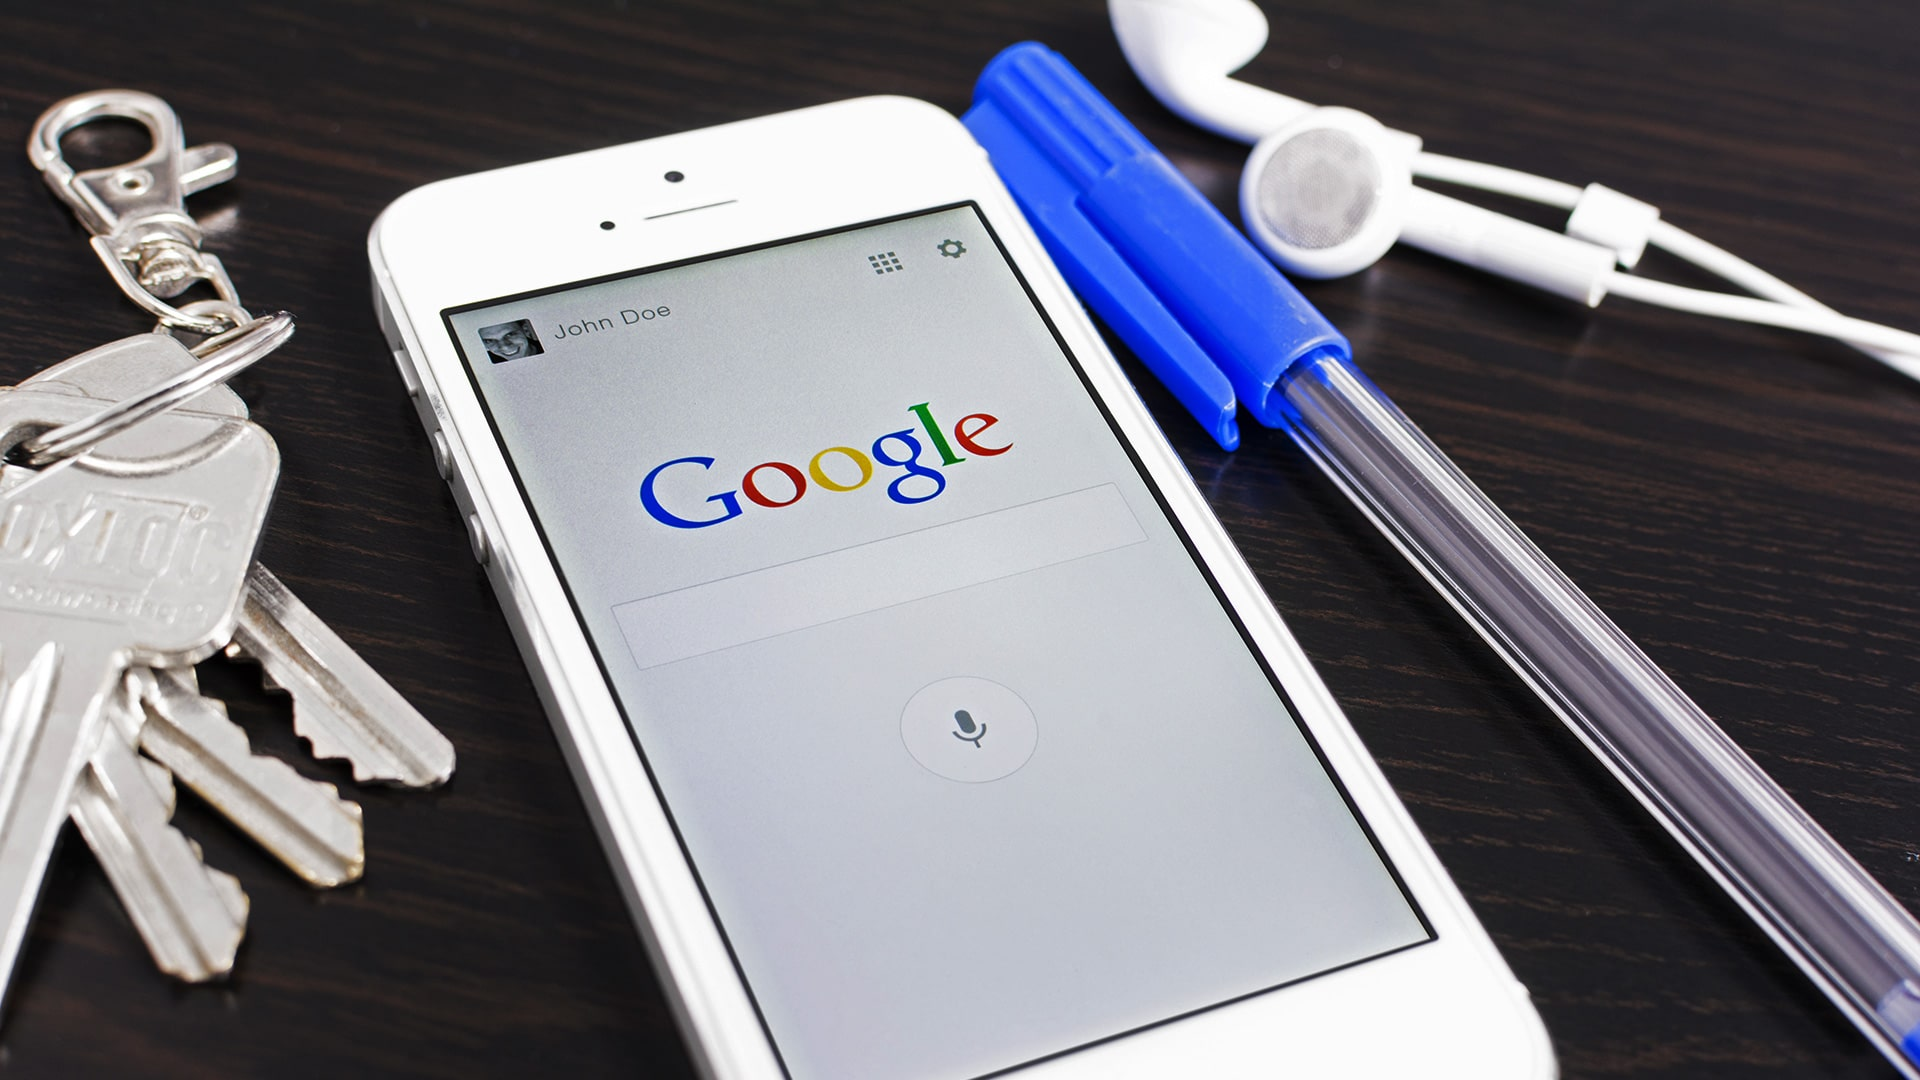 google-mobile-smartphone-search